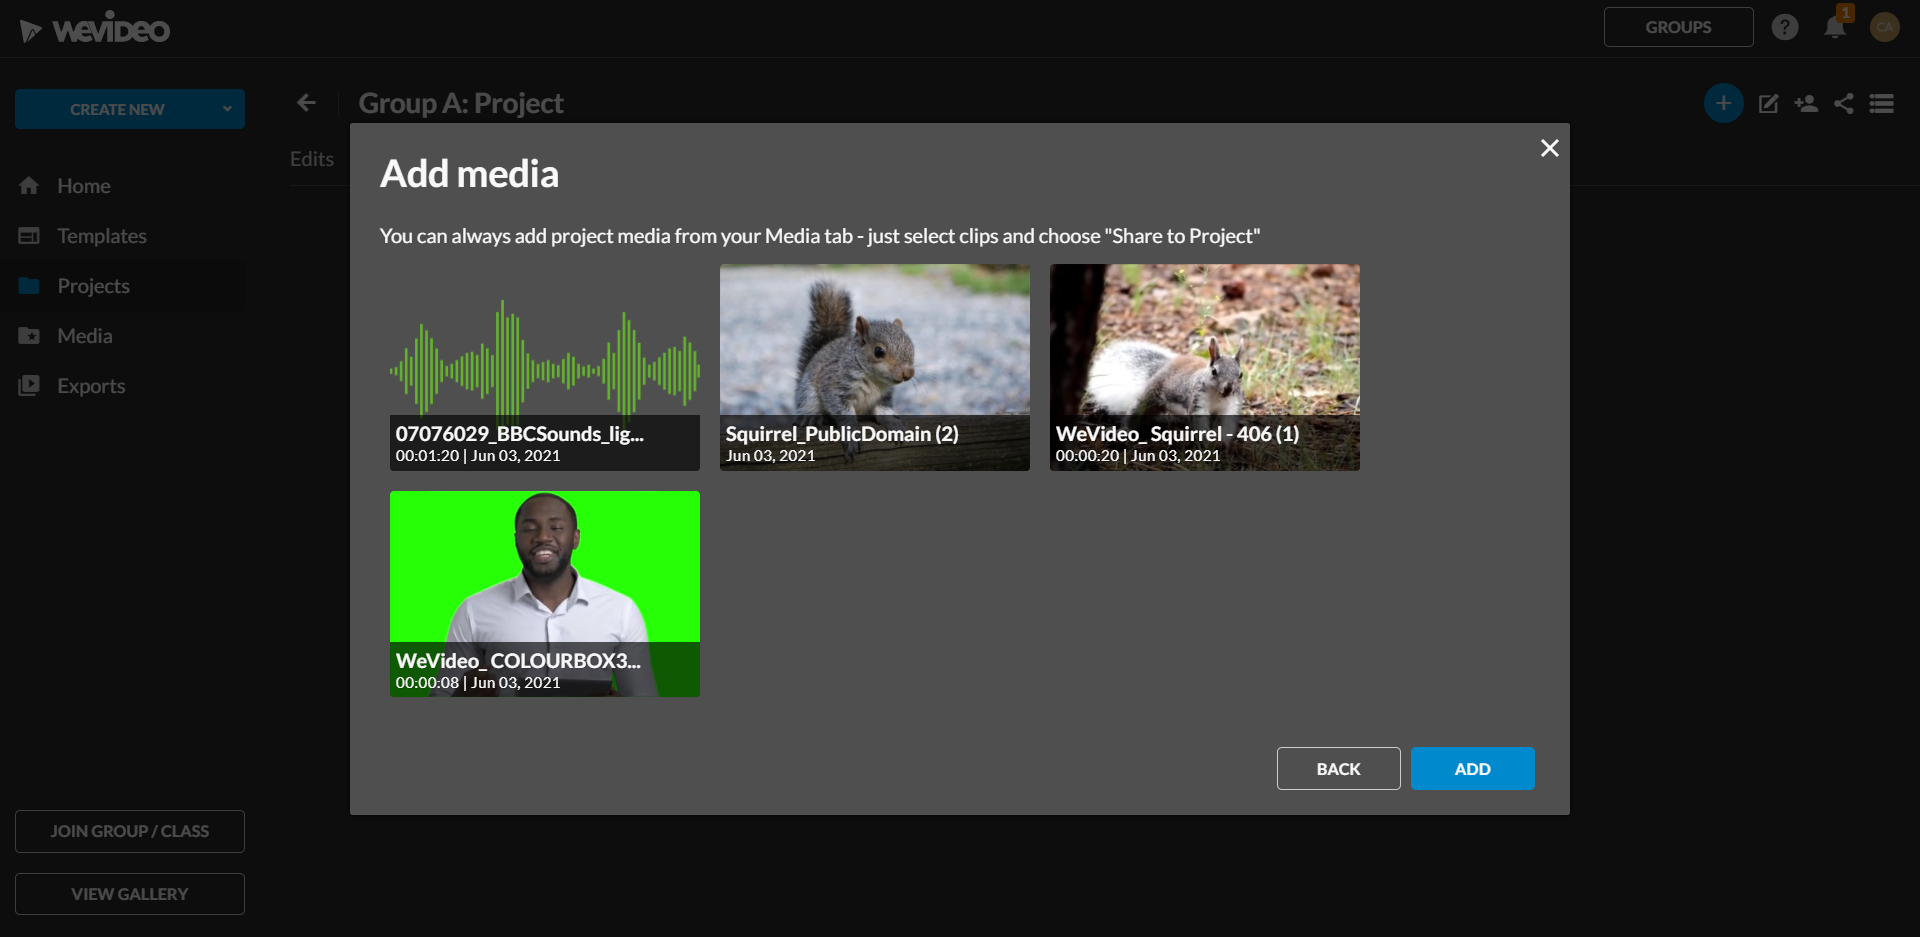 select media you want to add to your project